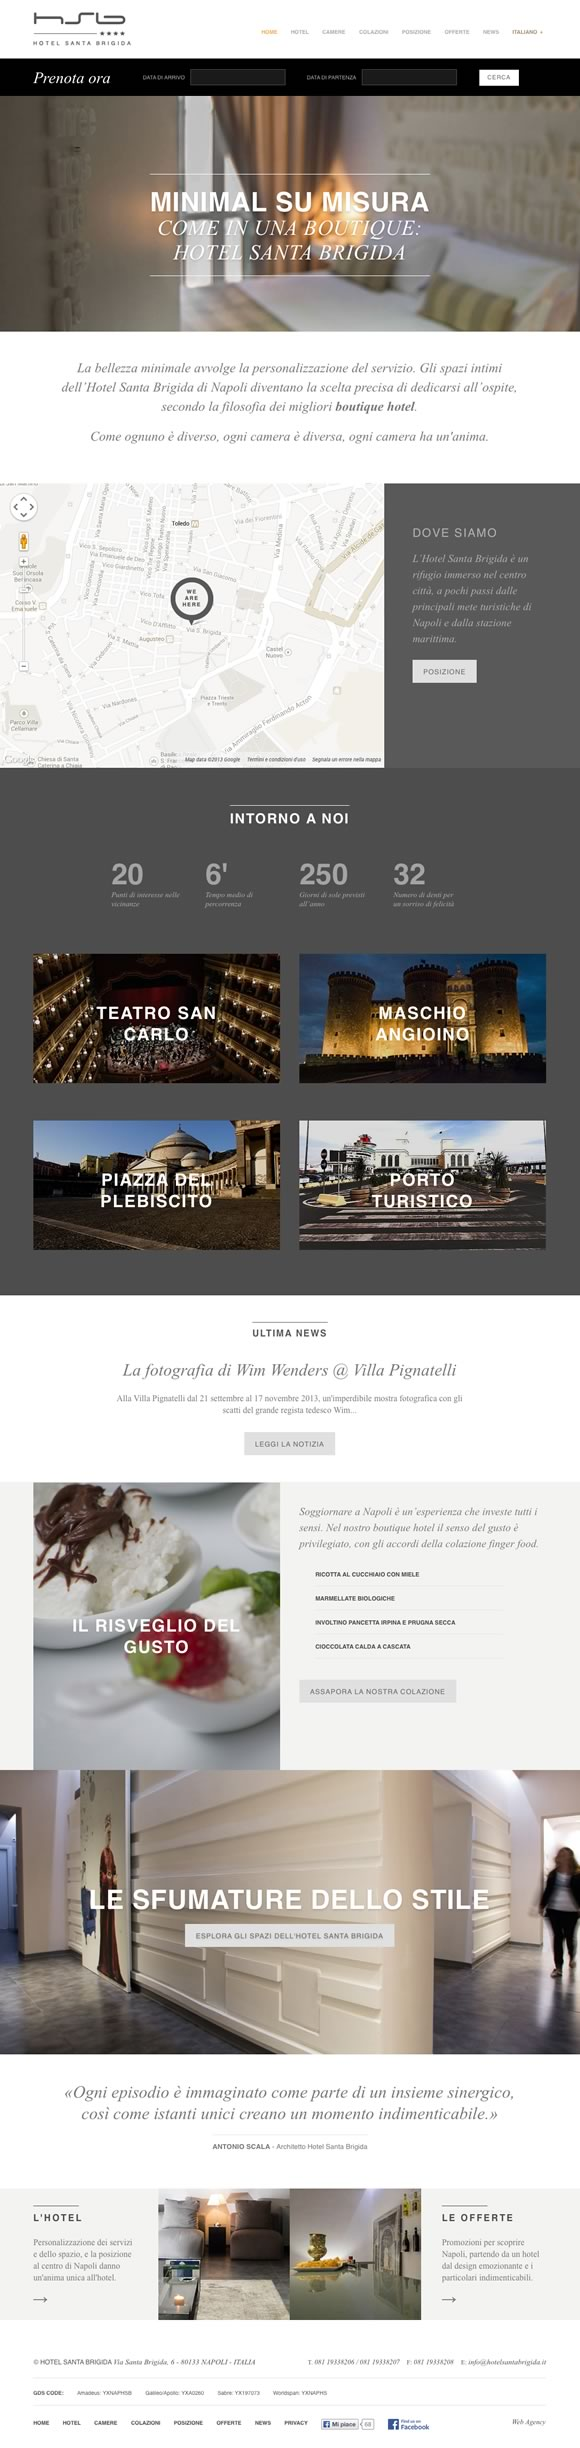 Web design per hotel la web agency presenta il sito del for Hotel web design